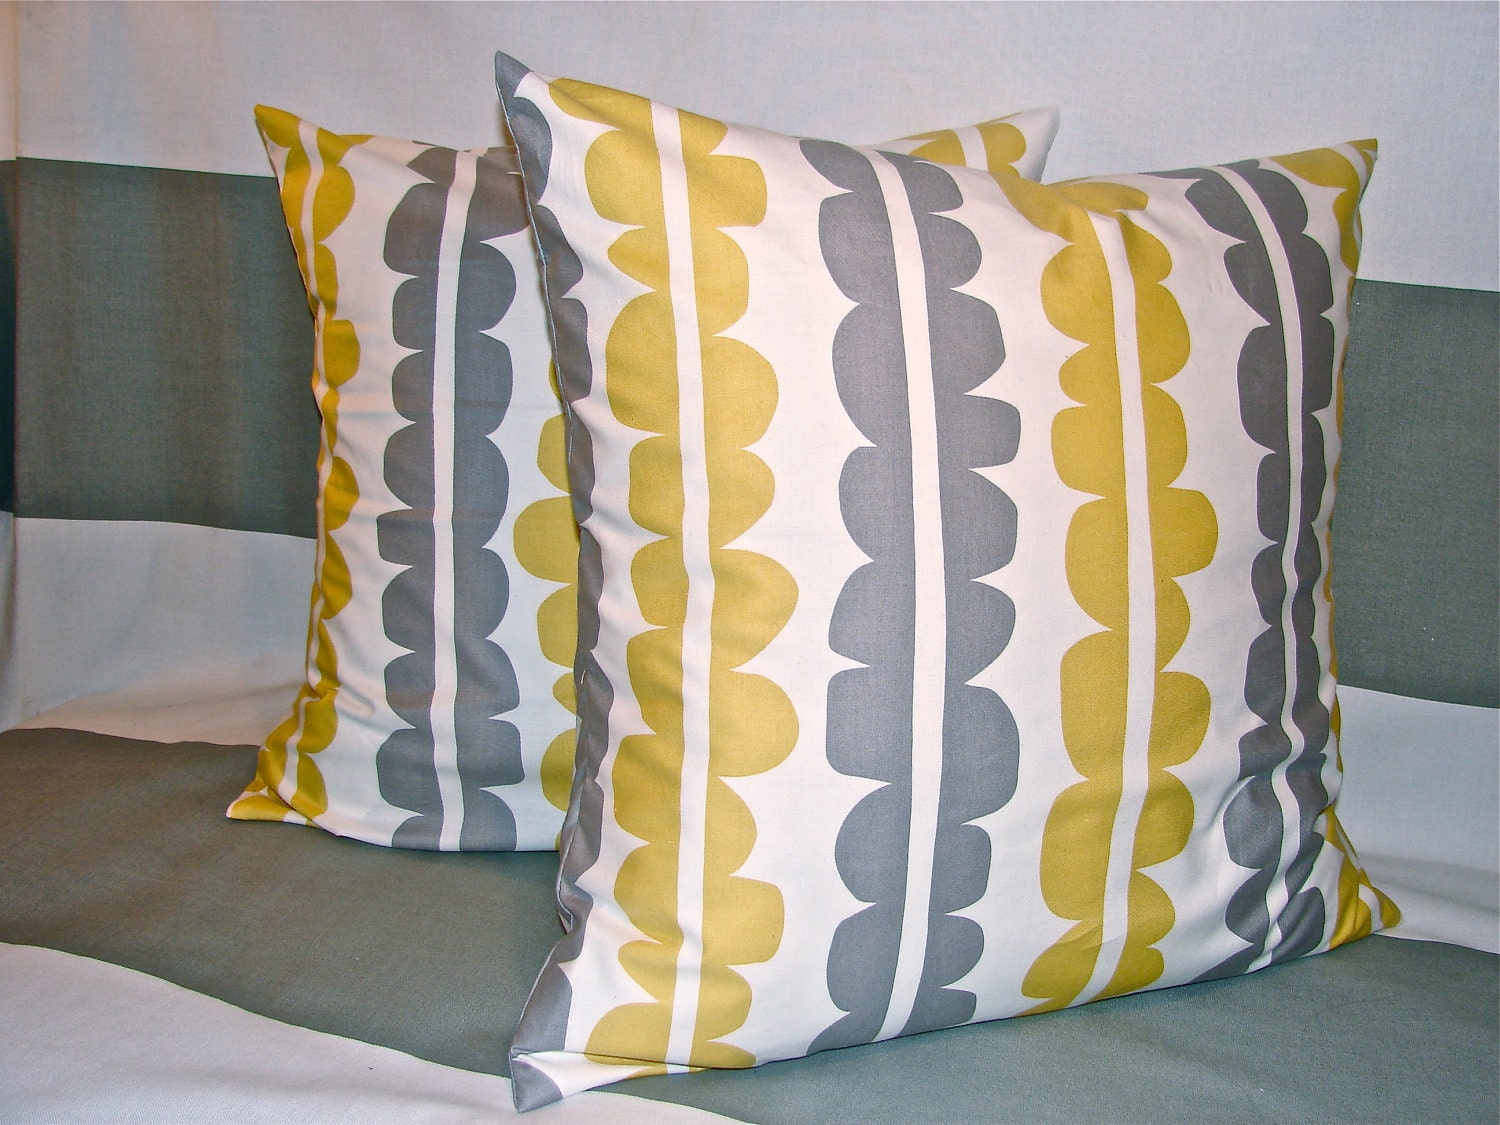 20x20 Yellow Grey and White Decorative Pillow Cover by urbansewl